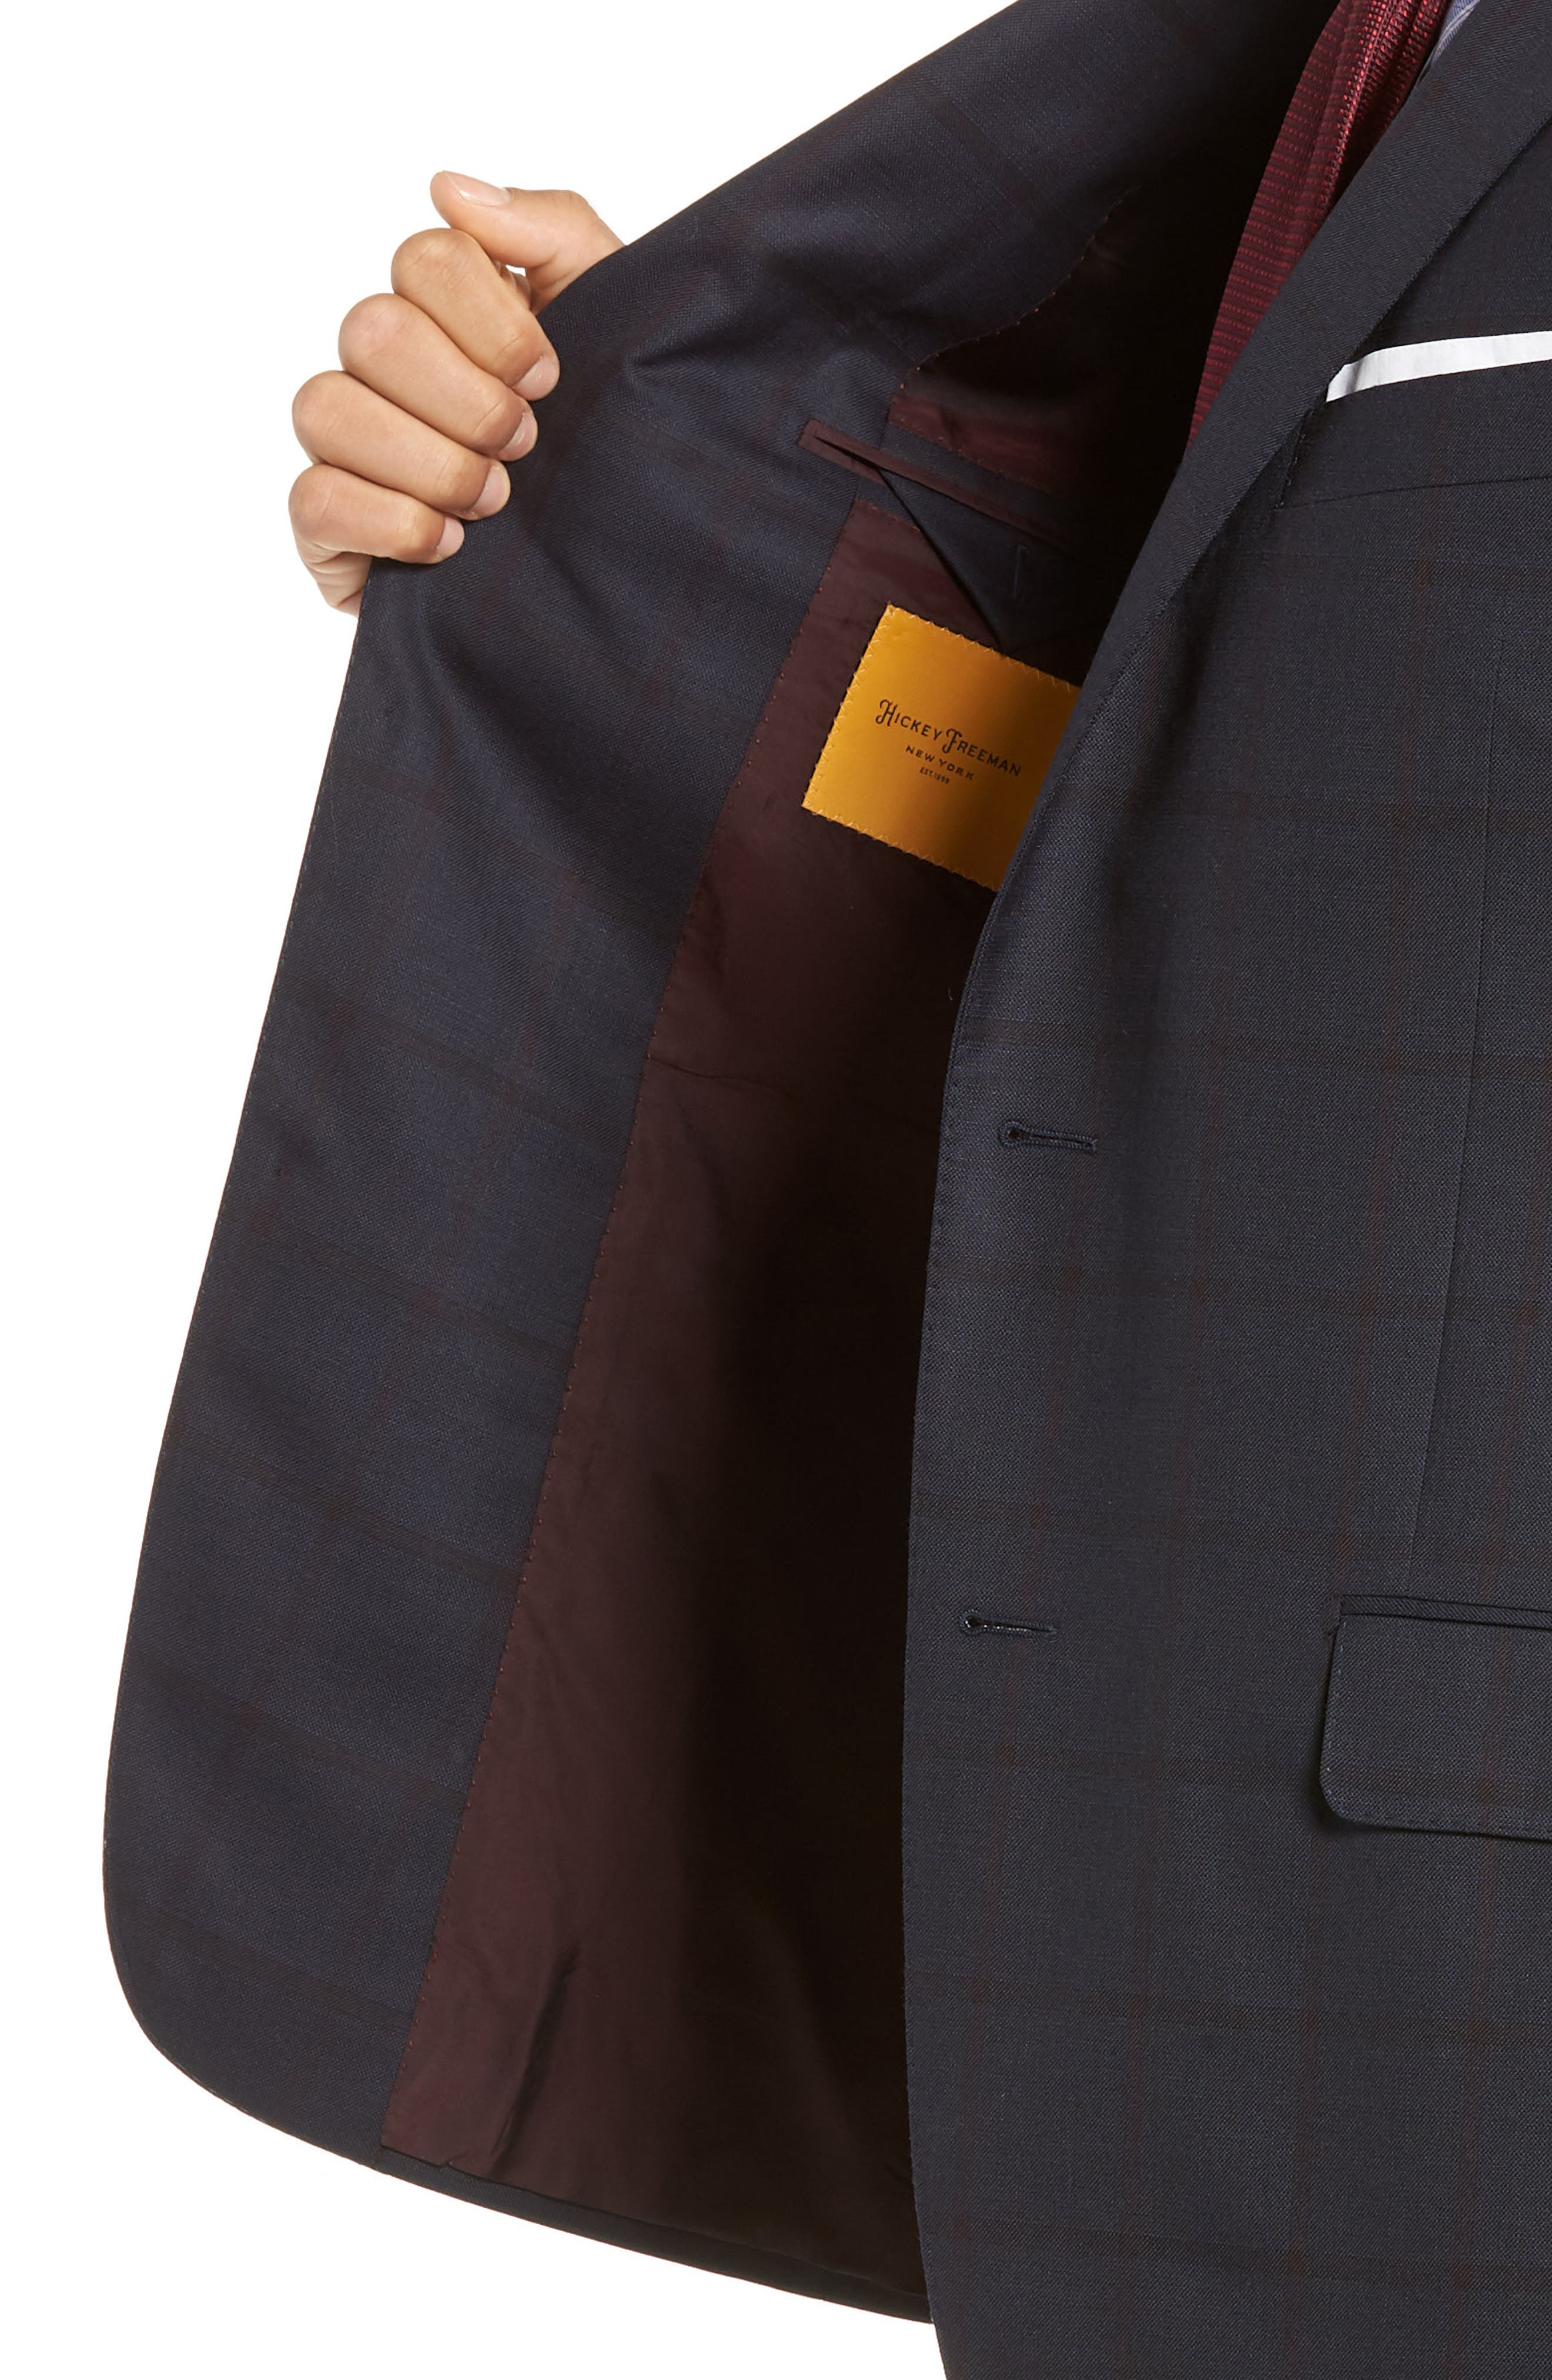 Classic Fit Windowpane Wool Suit,                             Alternate thumbnail 4, color,                             NAVY